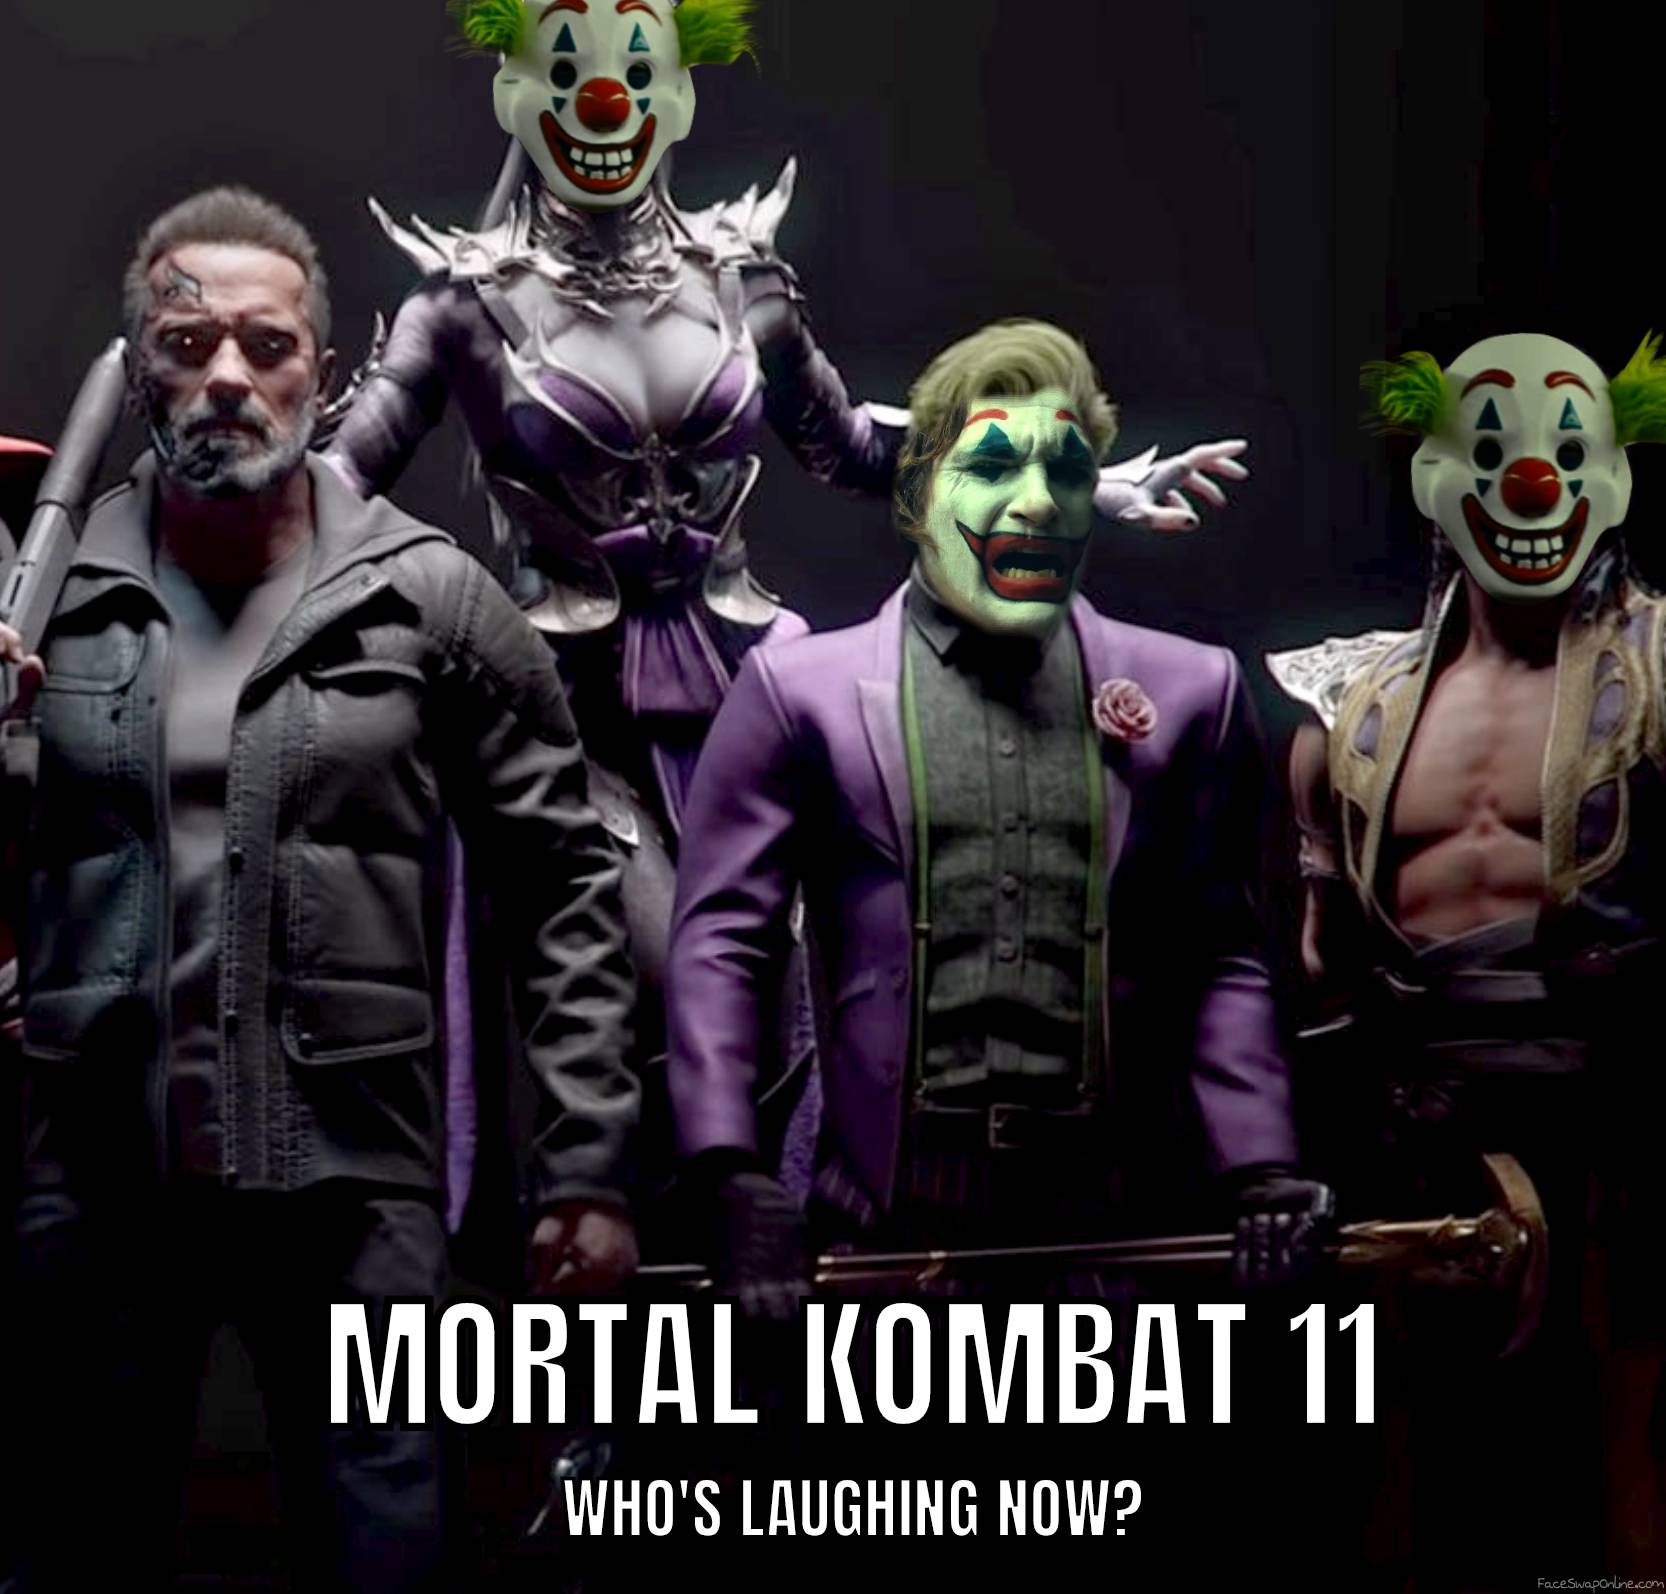 Joker in Mortal Kombat 11